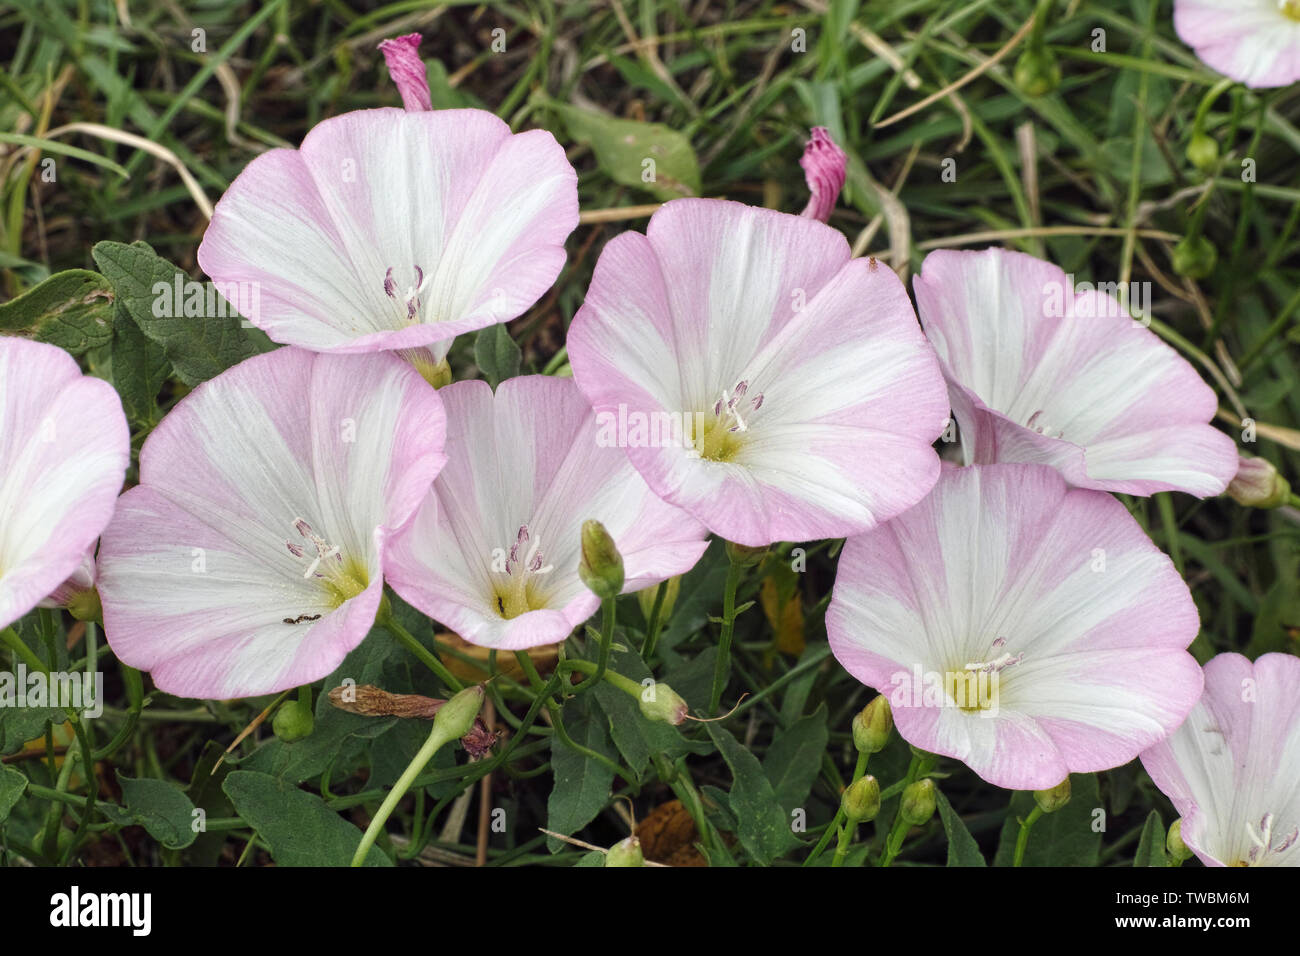 flowers and leaves of field bindweed in pale pink - Stock Image